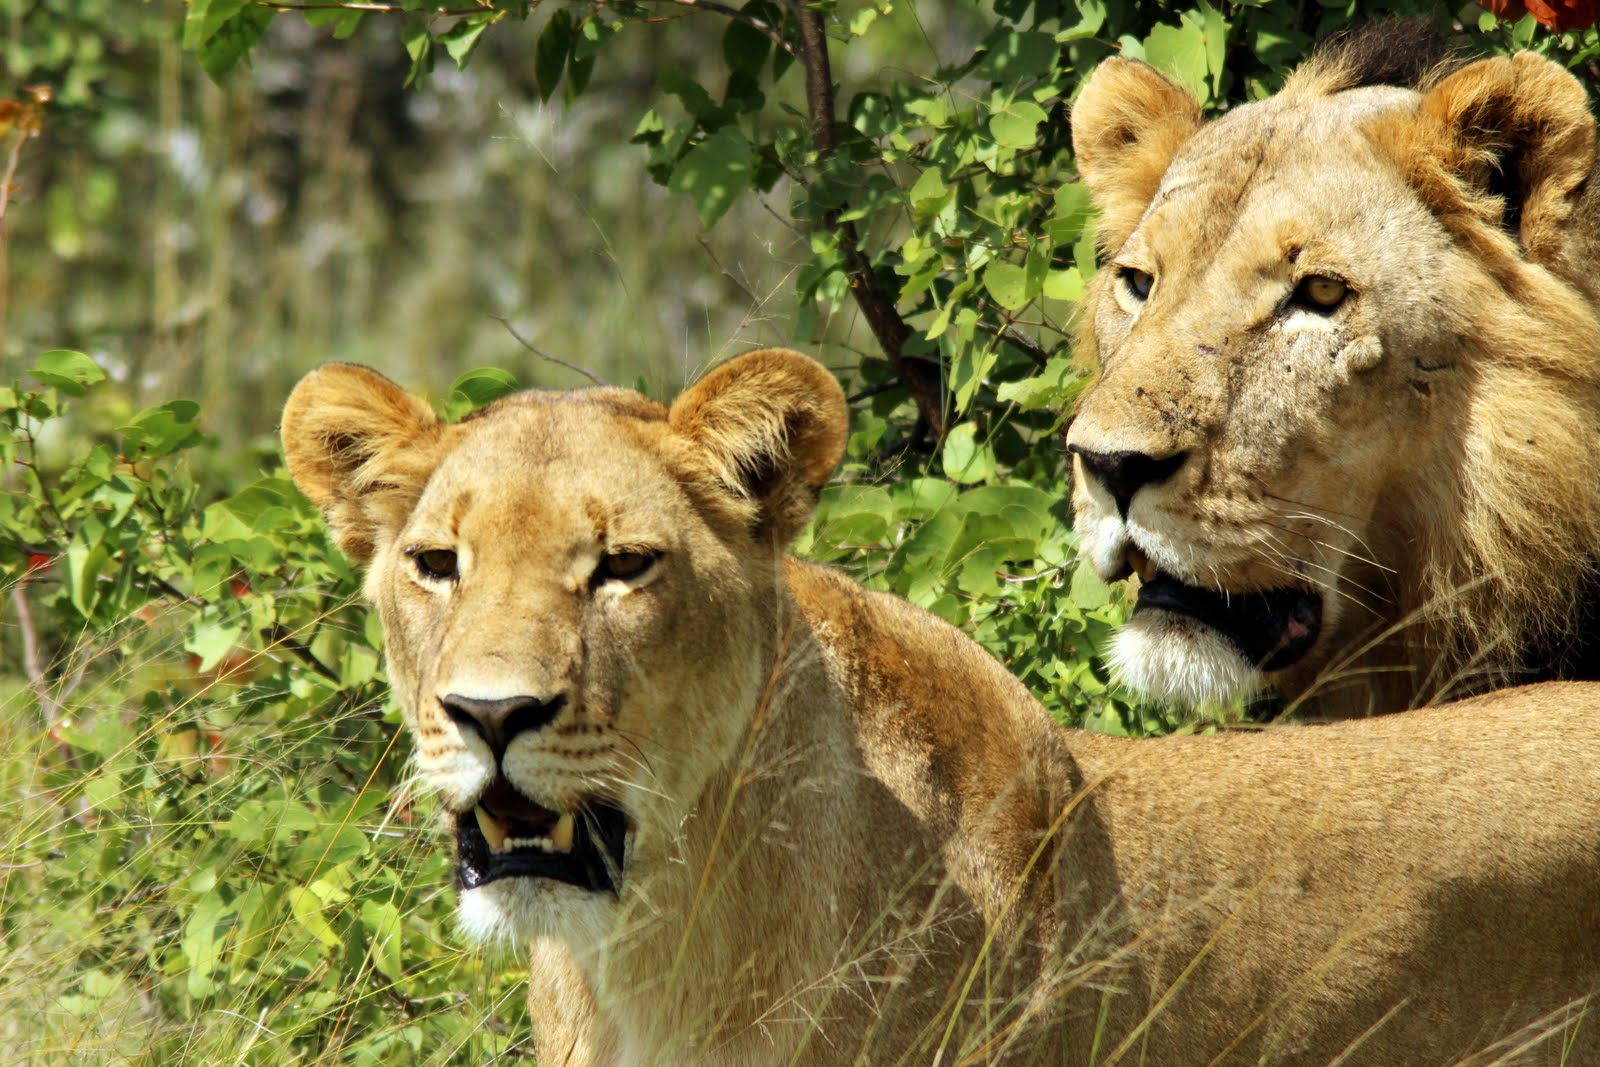 Getting to Akagera National Park